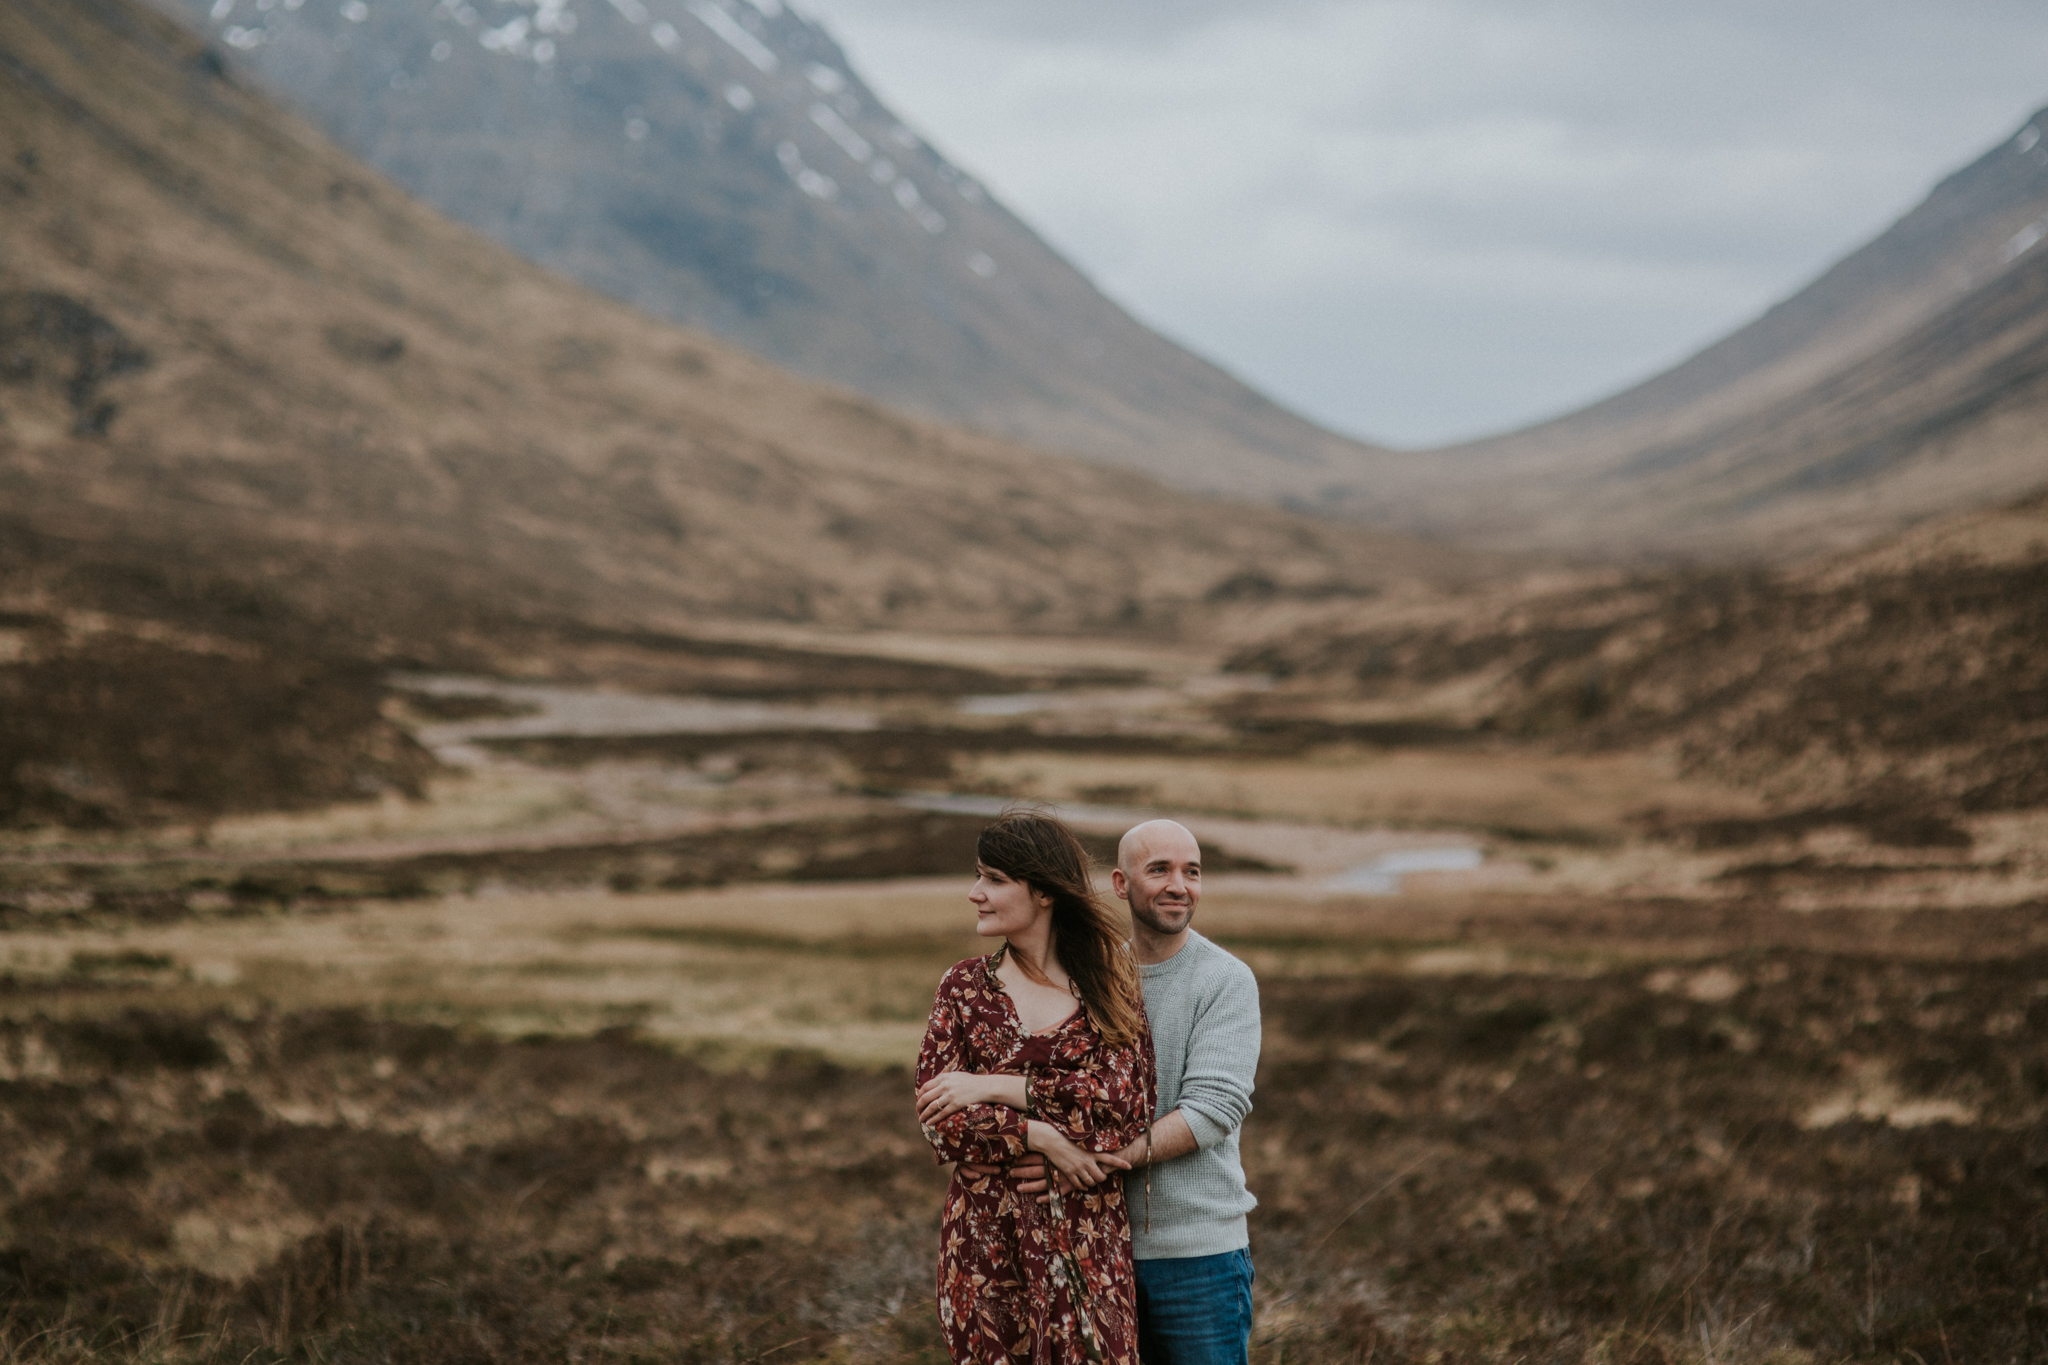 The engaged couple is cuddle each other in the breathtaking Glencoe Scottish Highlands